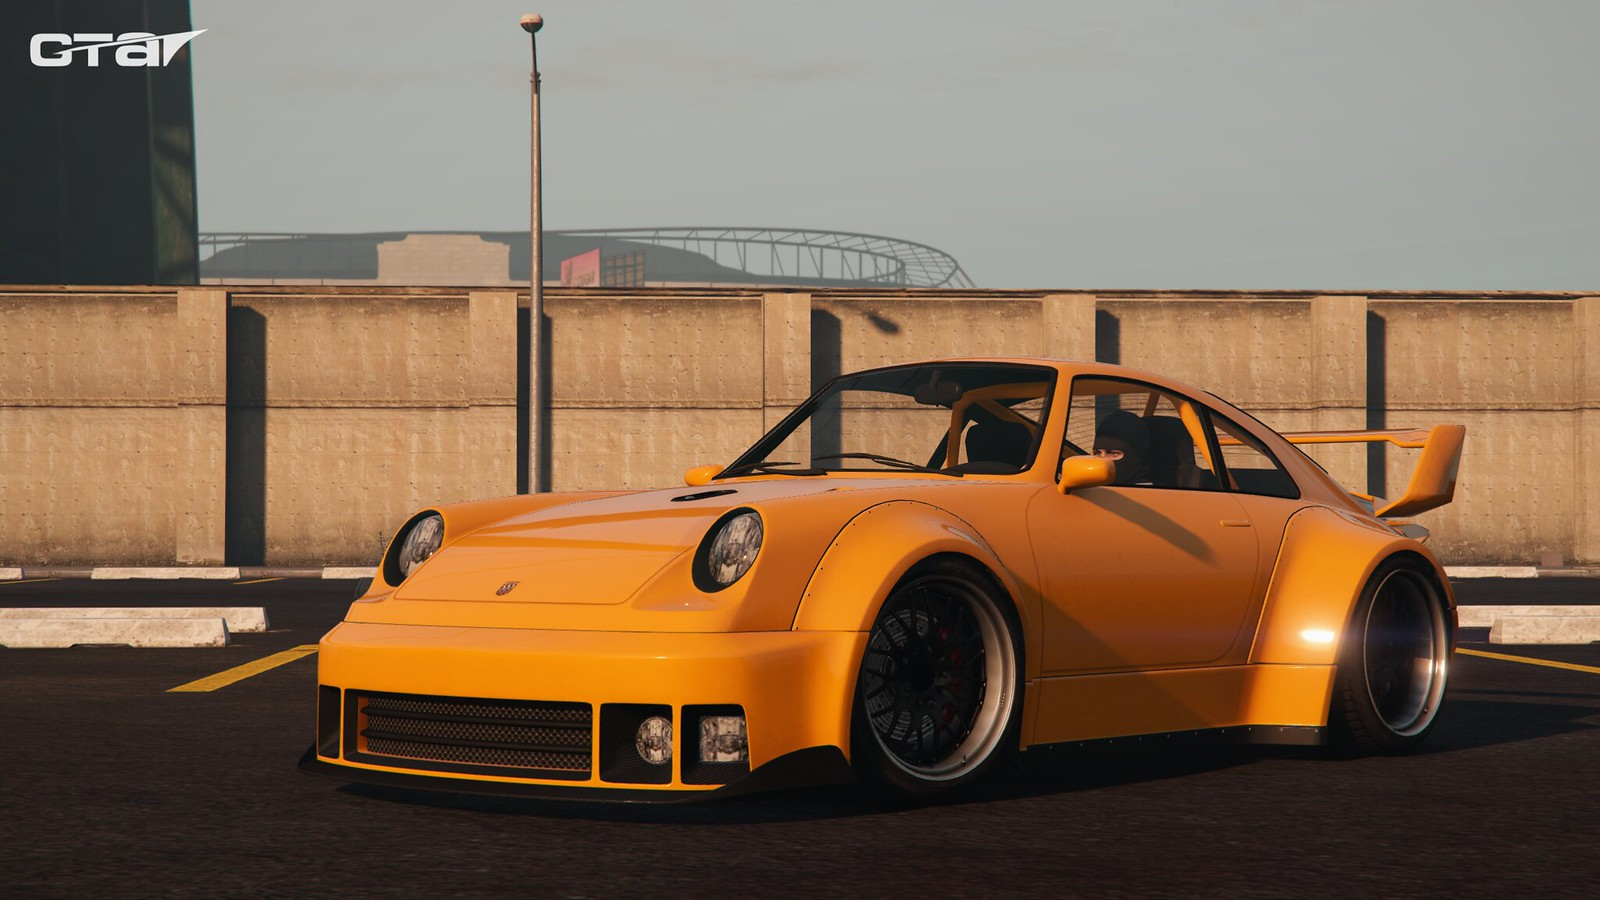 Best Cars To Upgrade In Gta